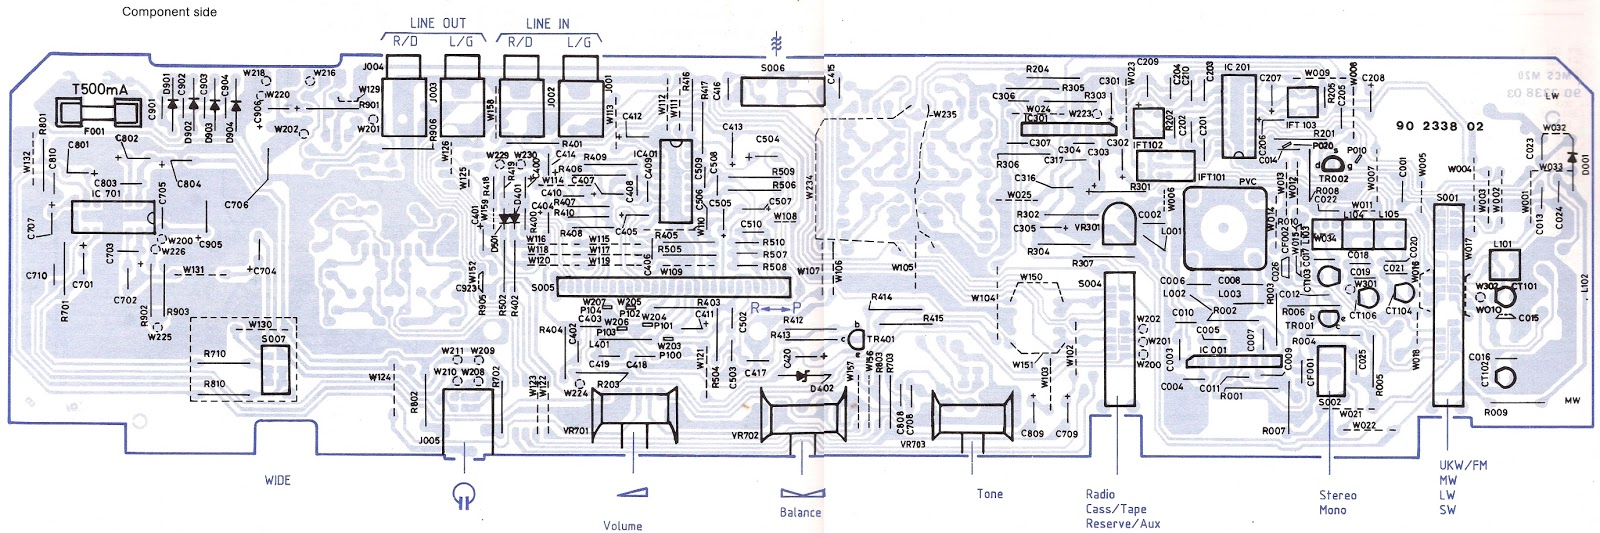 medium resolution of circuit diagram and pwb click on the pictures to magnify